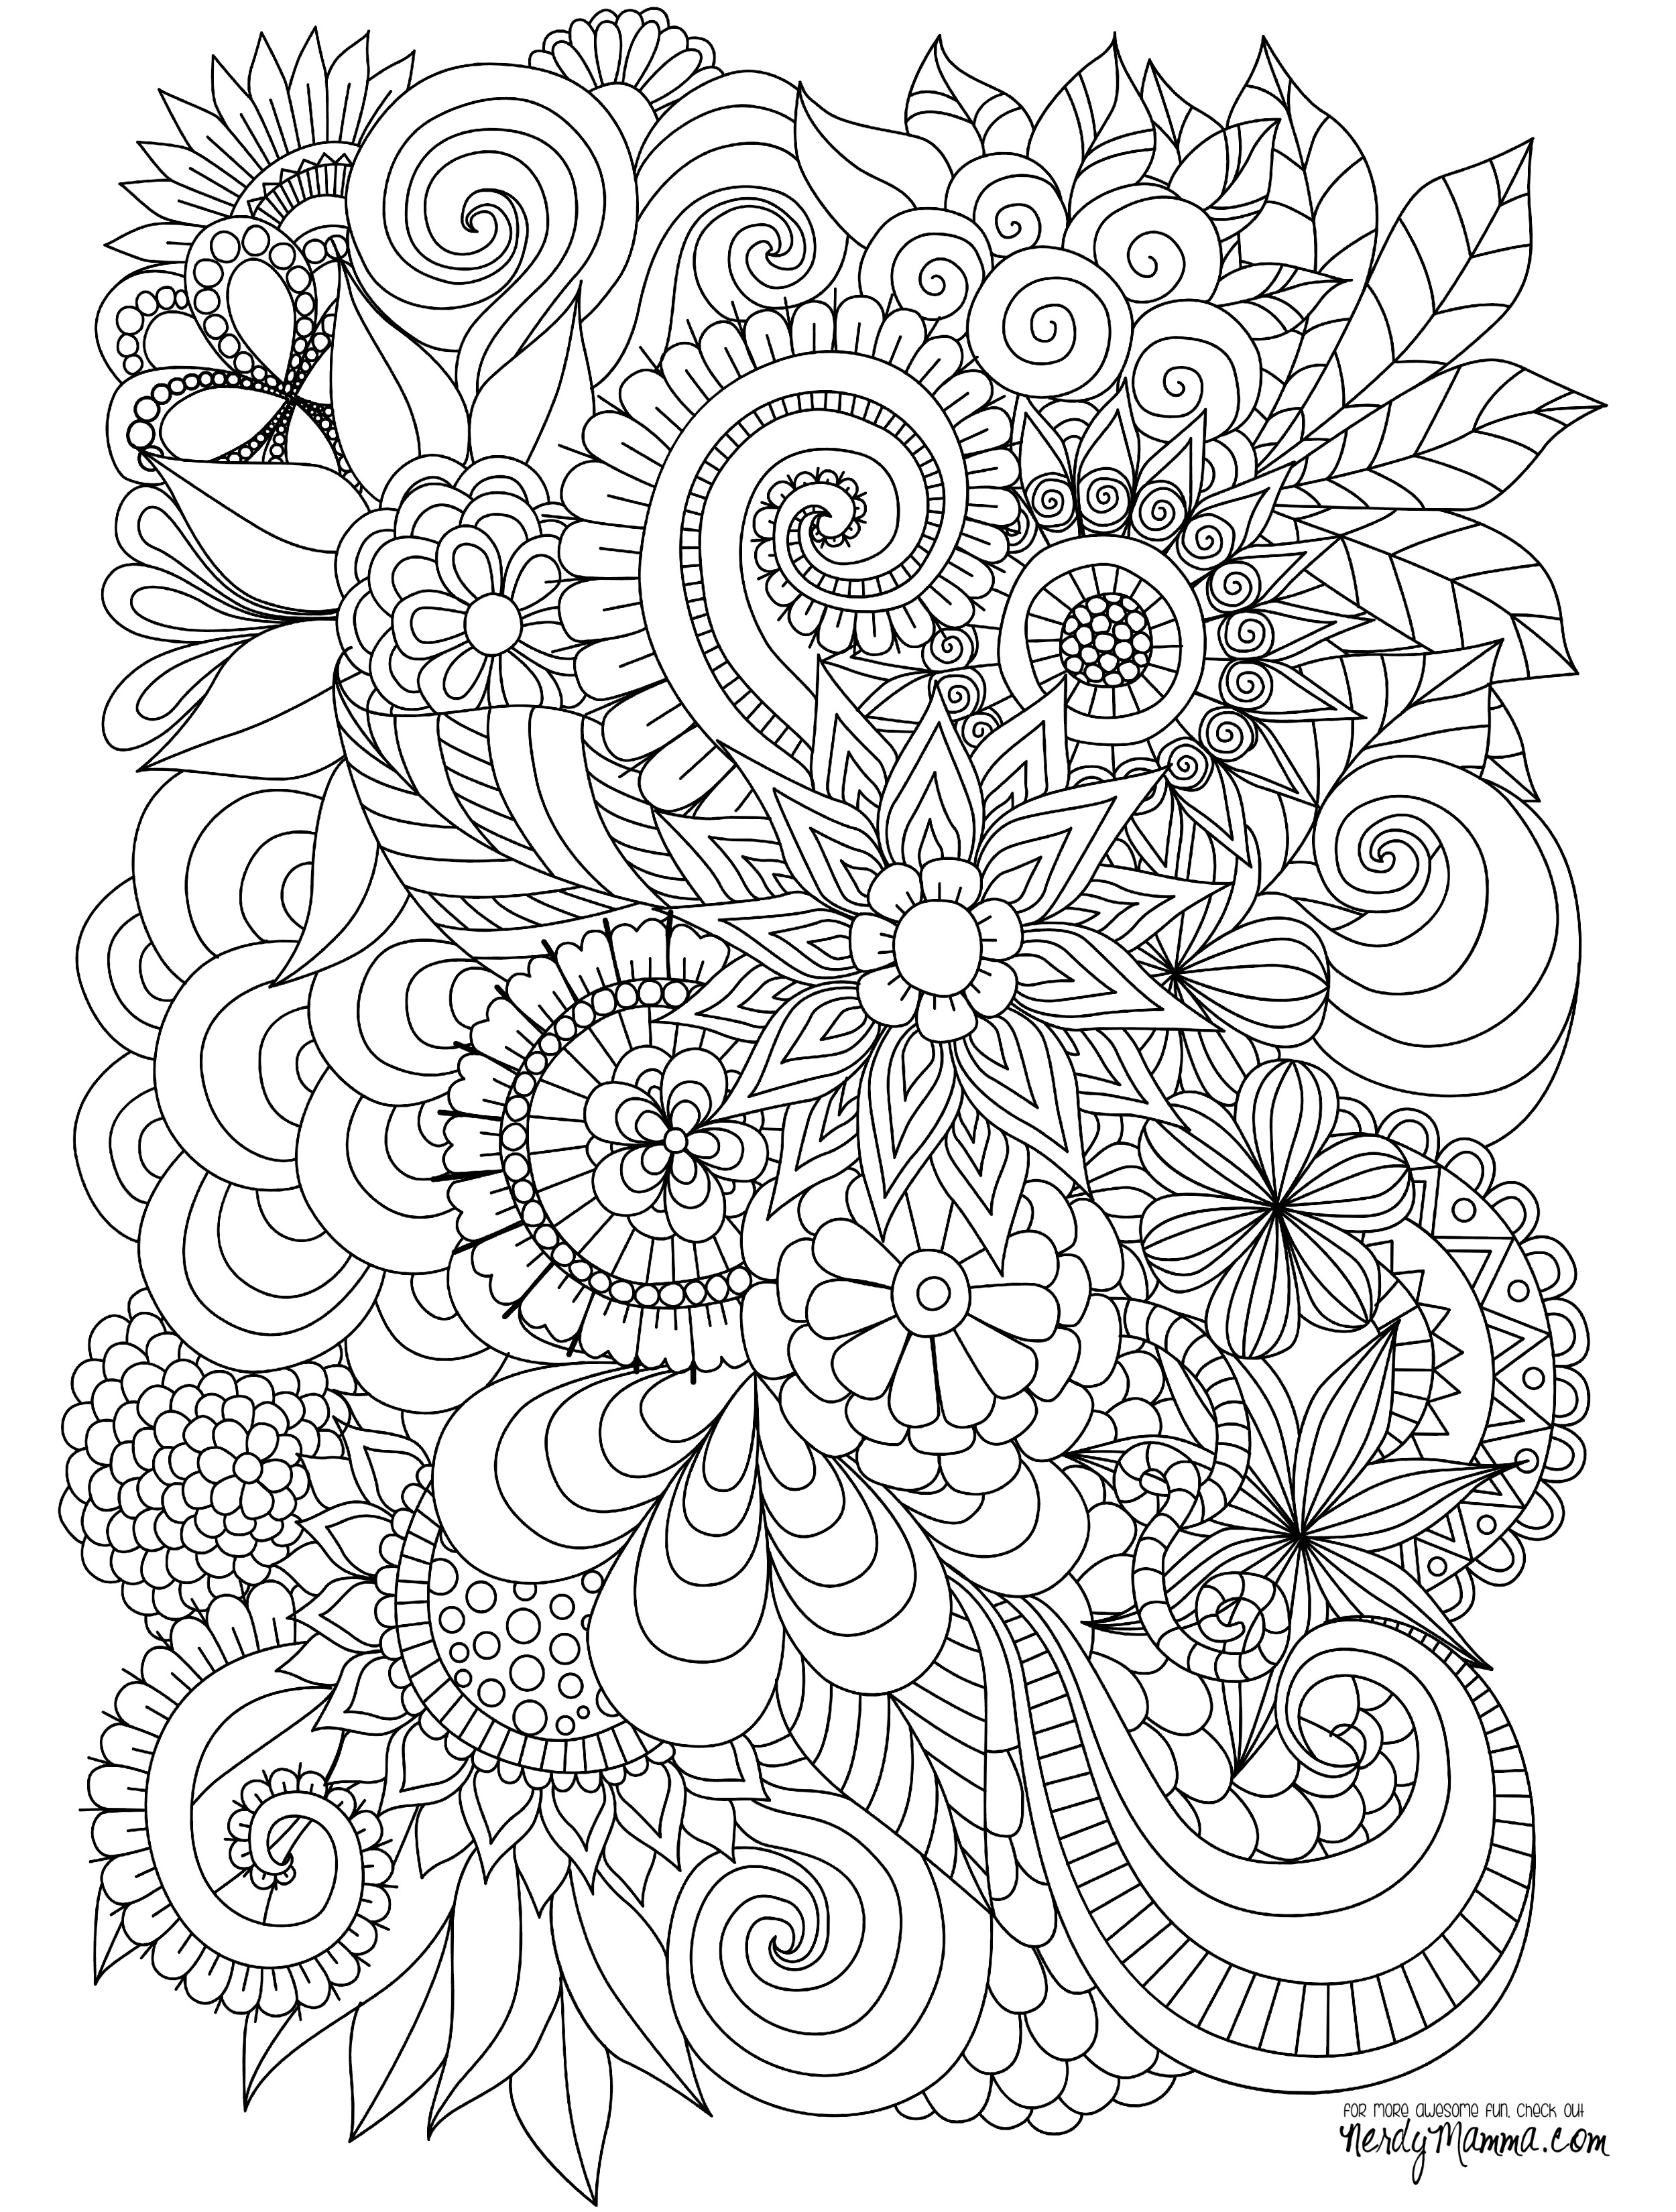 Free Printable Coloring Pages Pdf